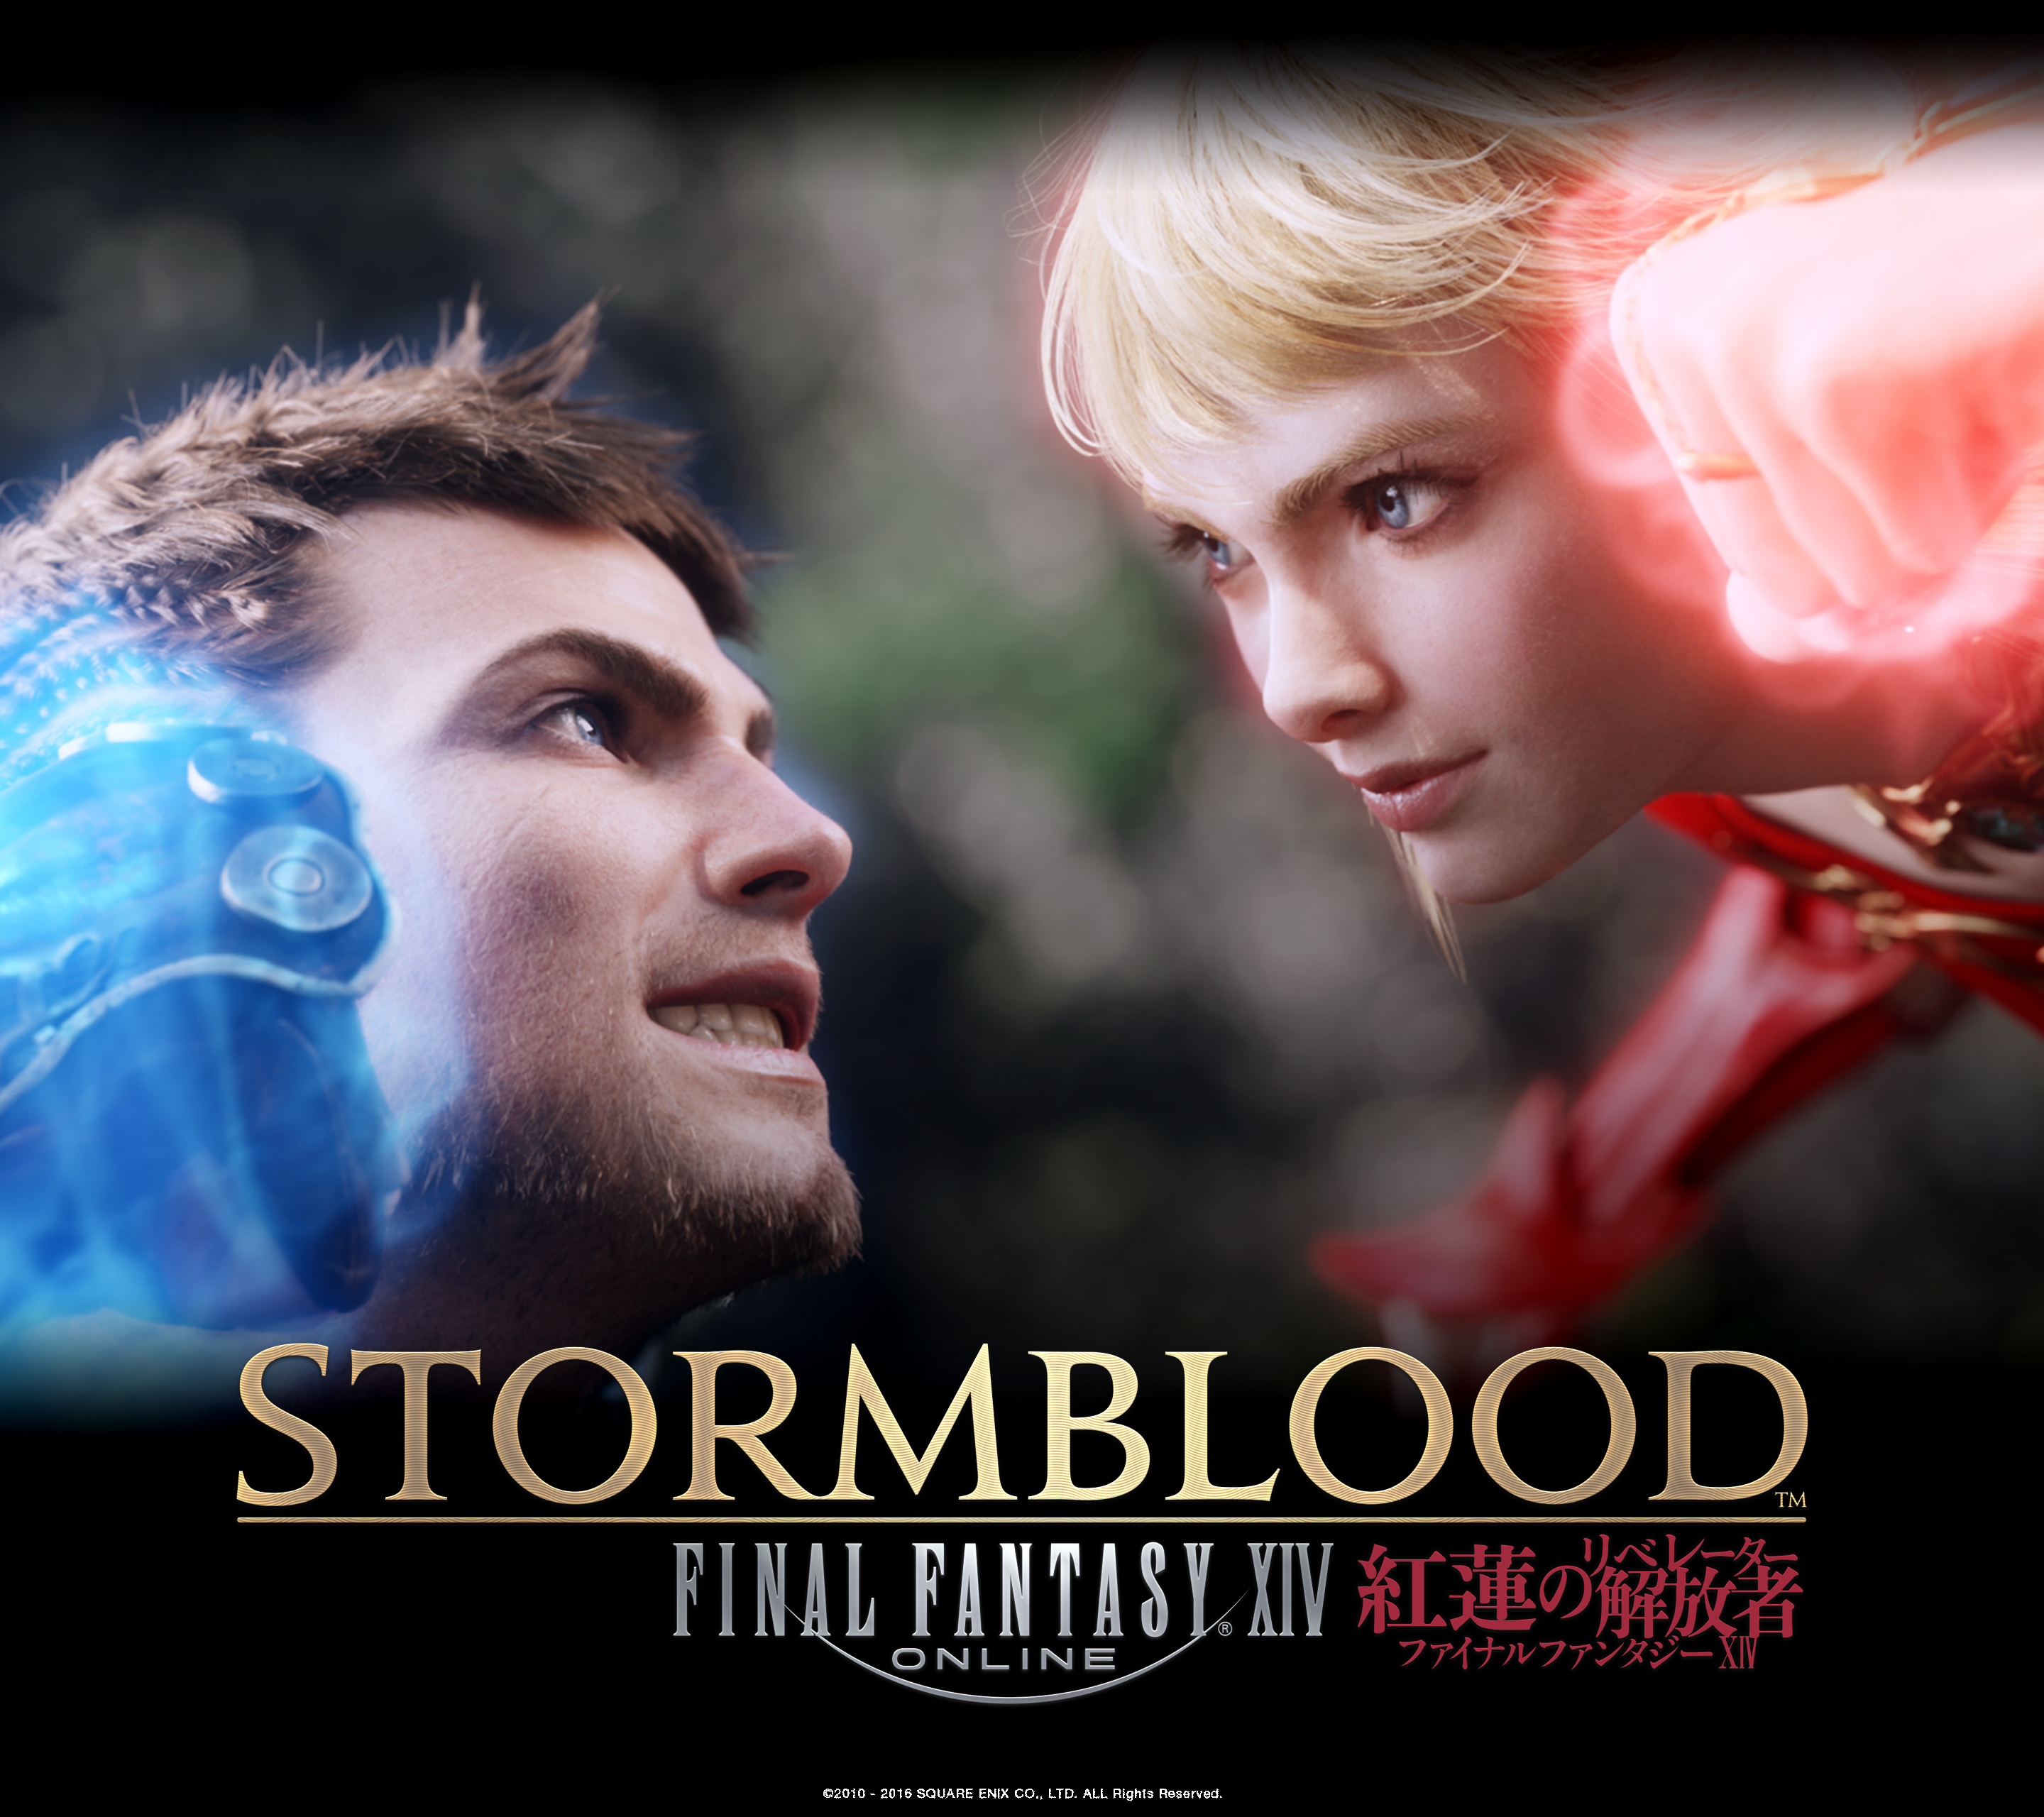 FINAL FANTASY XIV Stormblood Coming Early Summer 2017